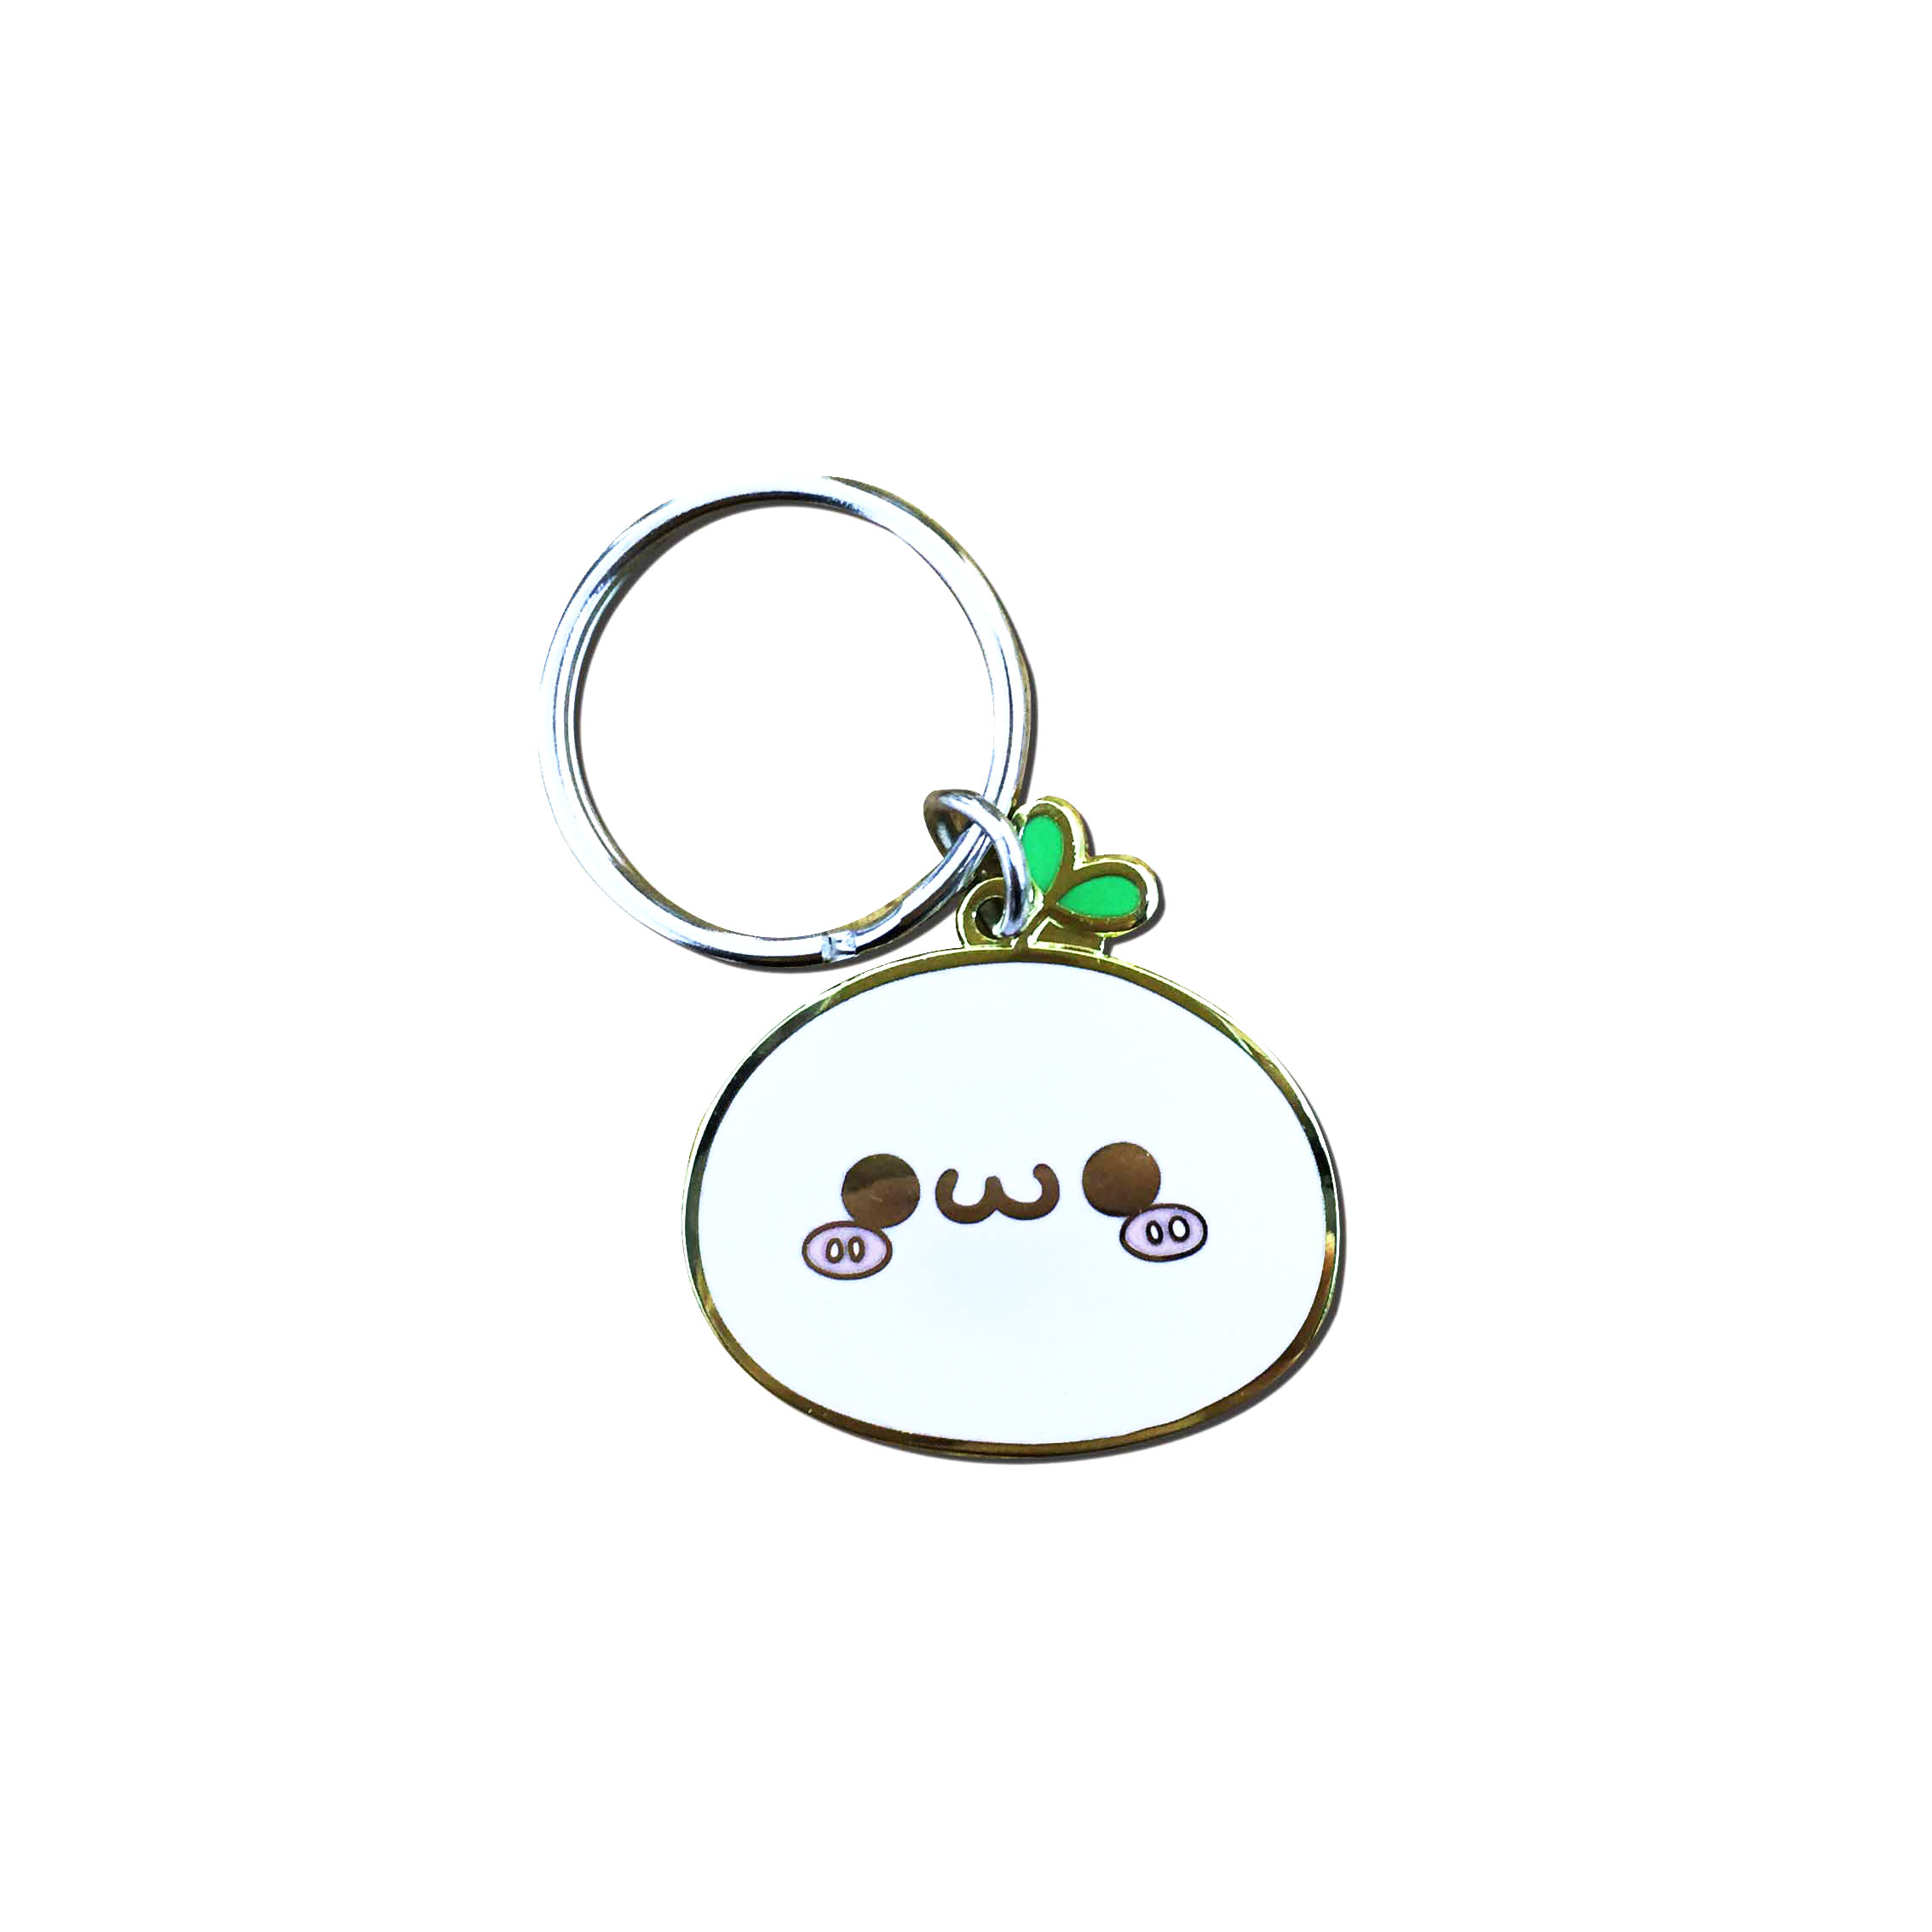 Free design high quality low price key chain cute gift for little girl metal key chains